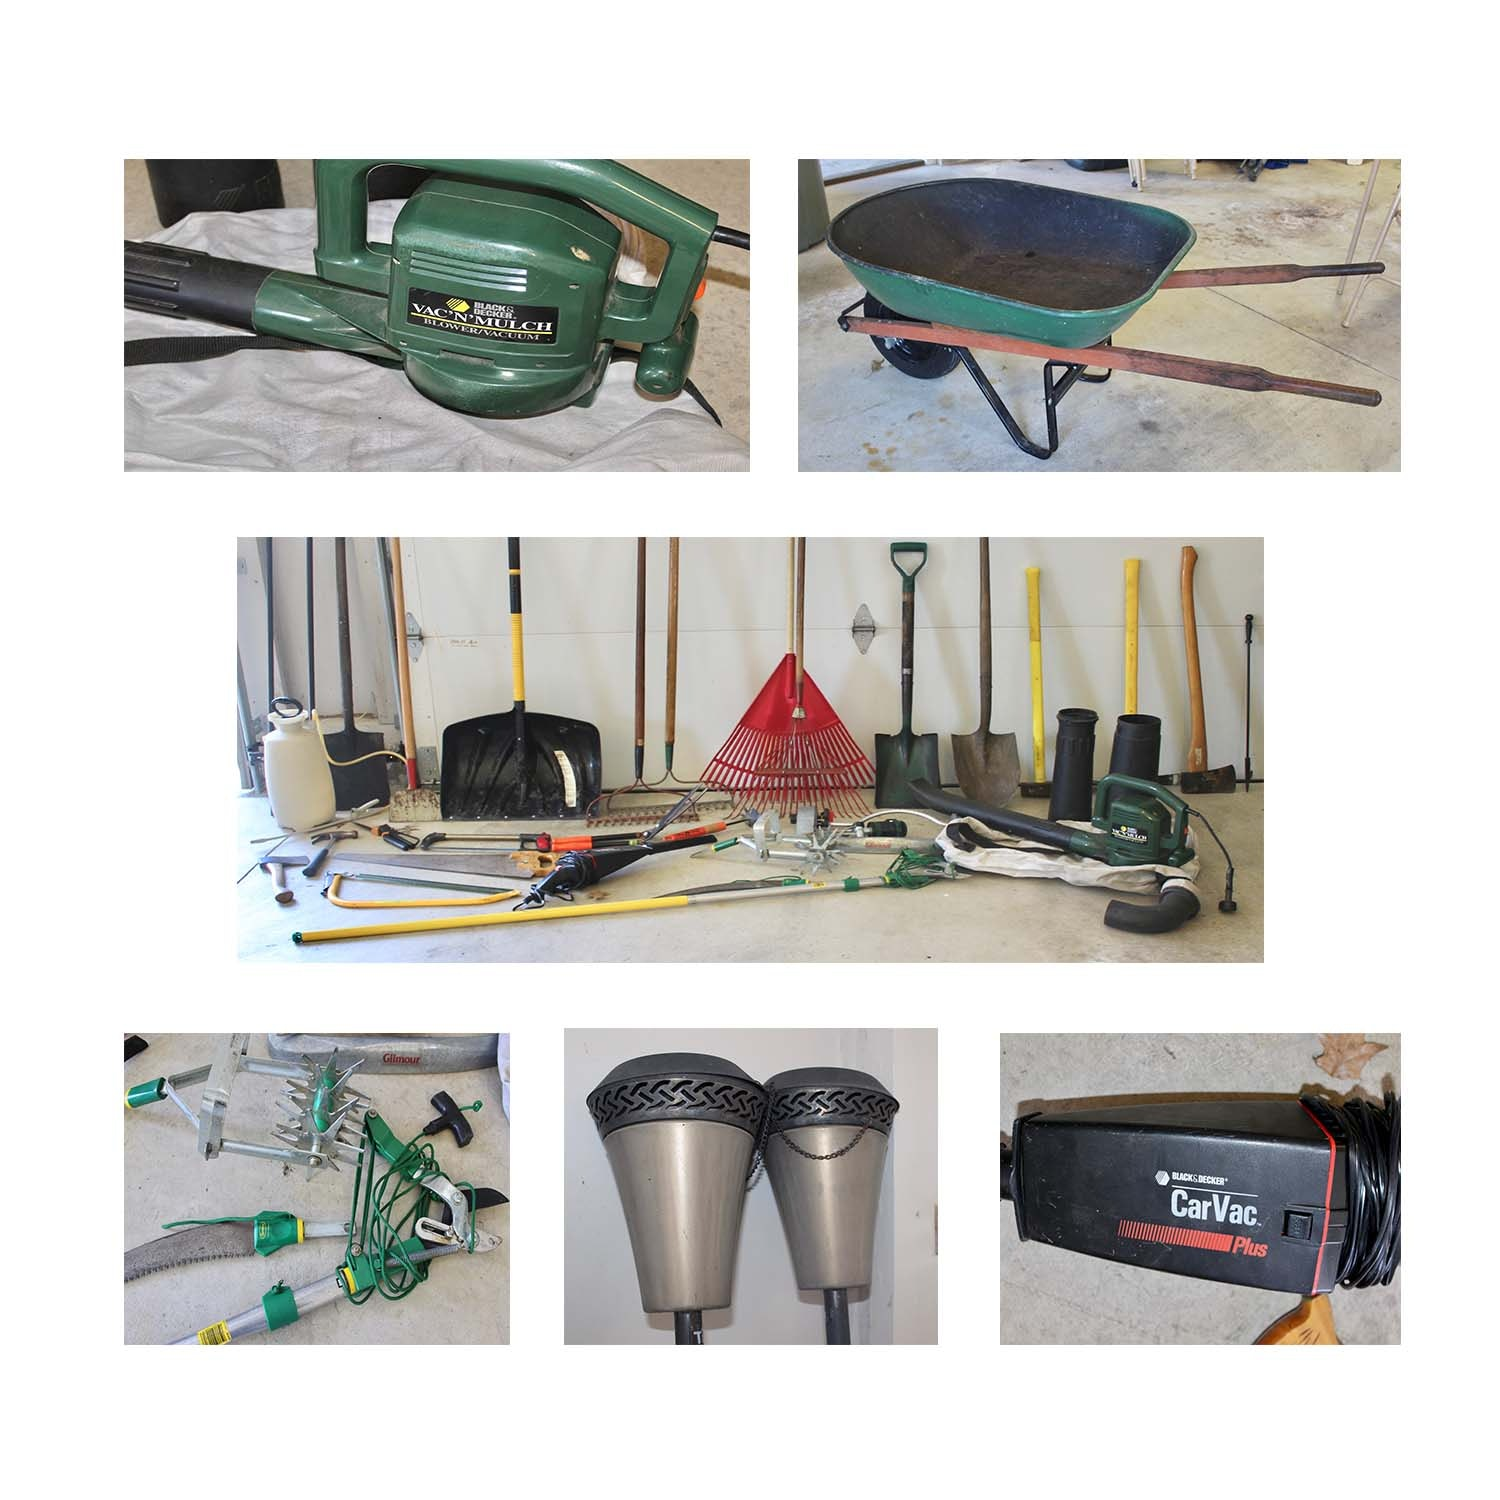 Garage and Garden Tools and Accessories Including Black & Decker